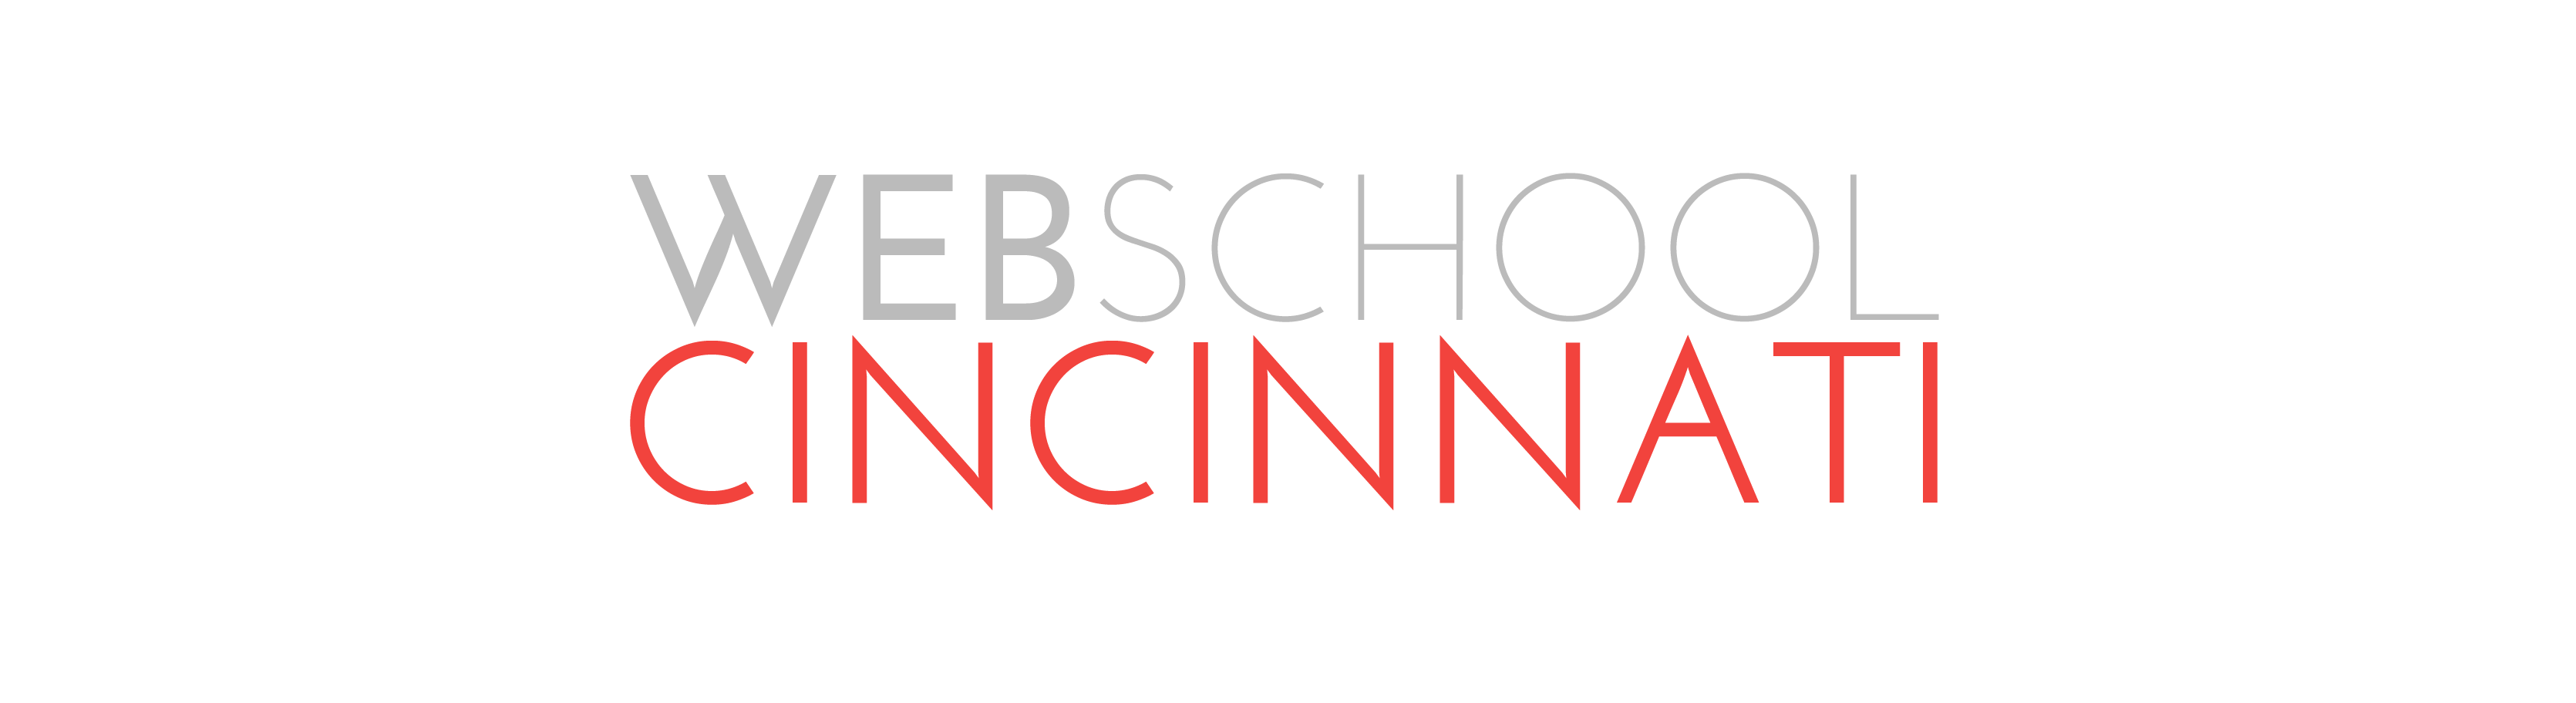 web school cincy